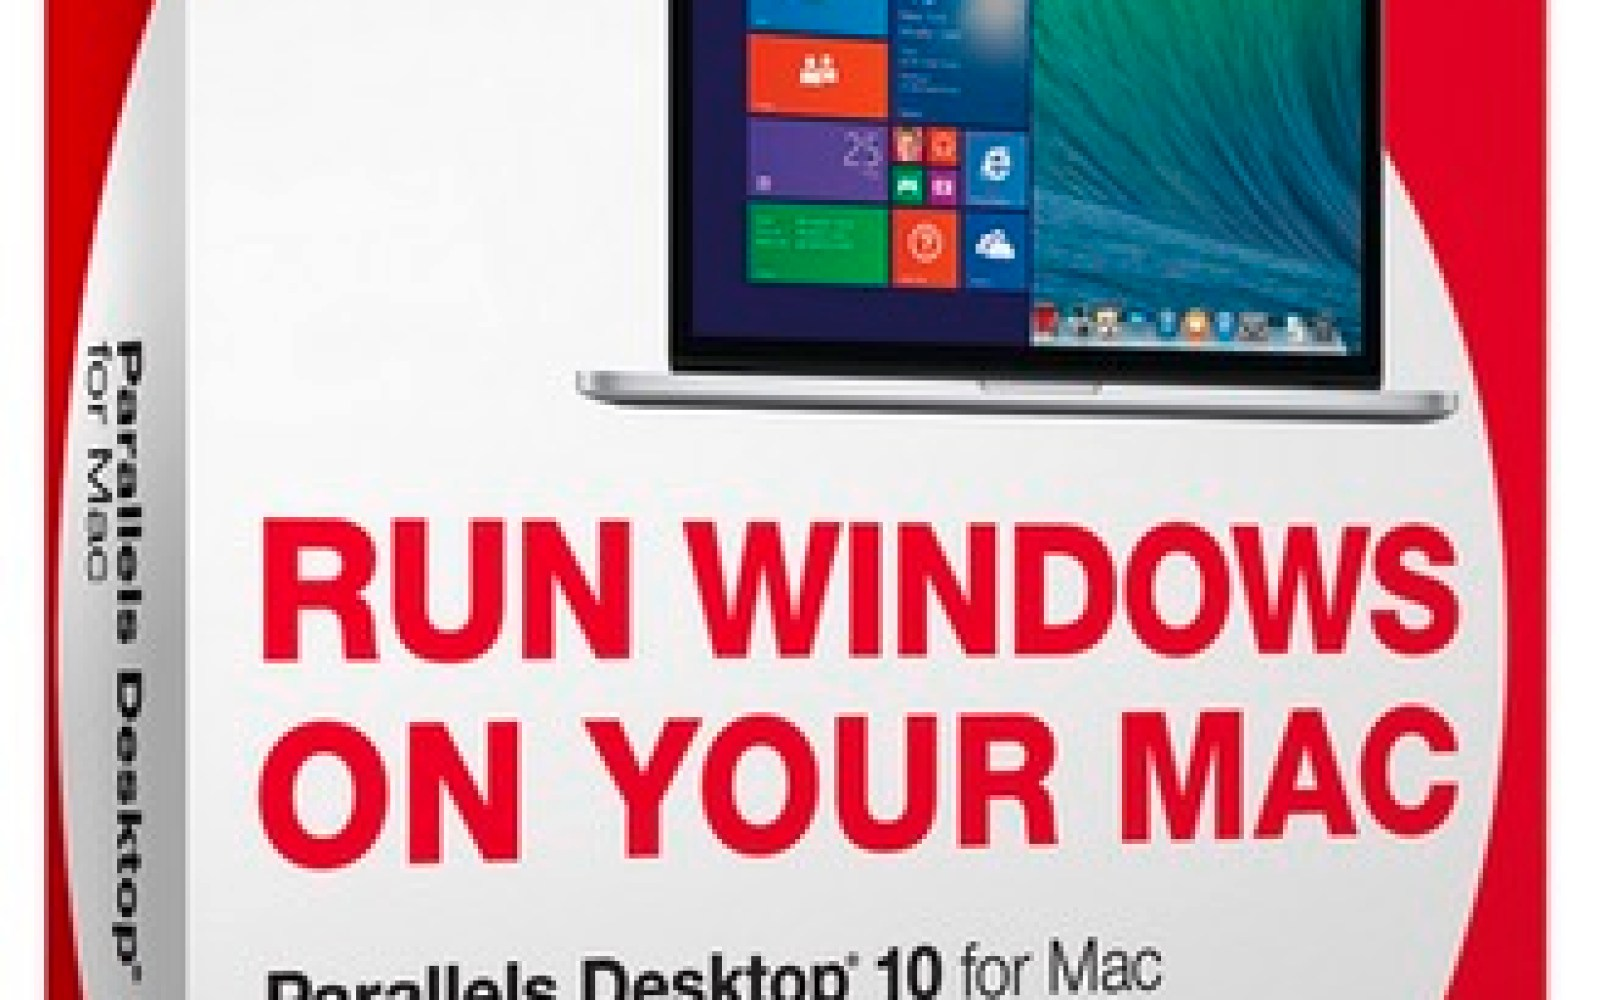 Parallels Desktop 10 announced with support for Yosemite, iCloud Drive, and much more